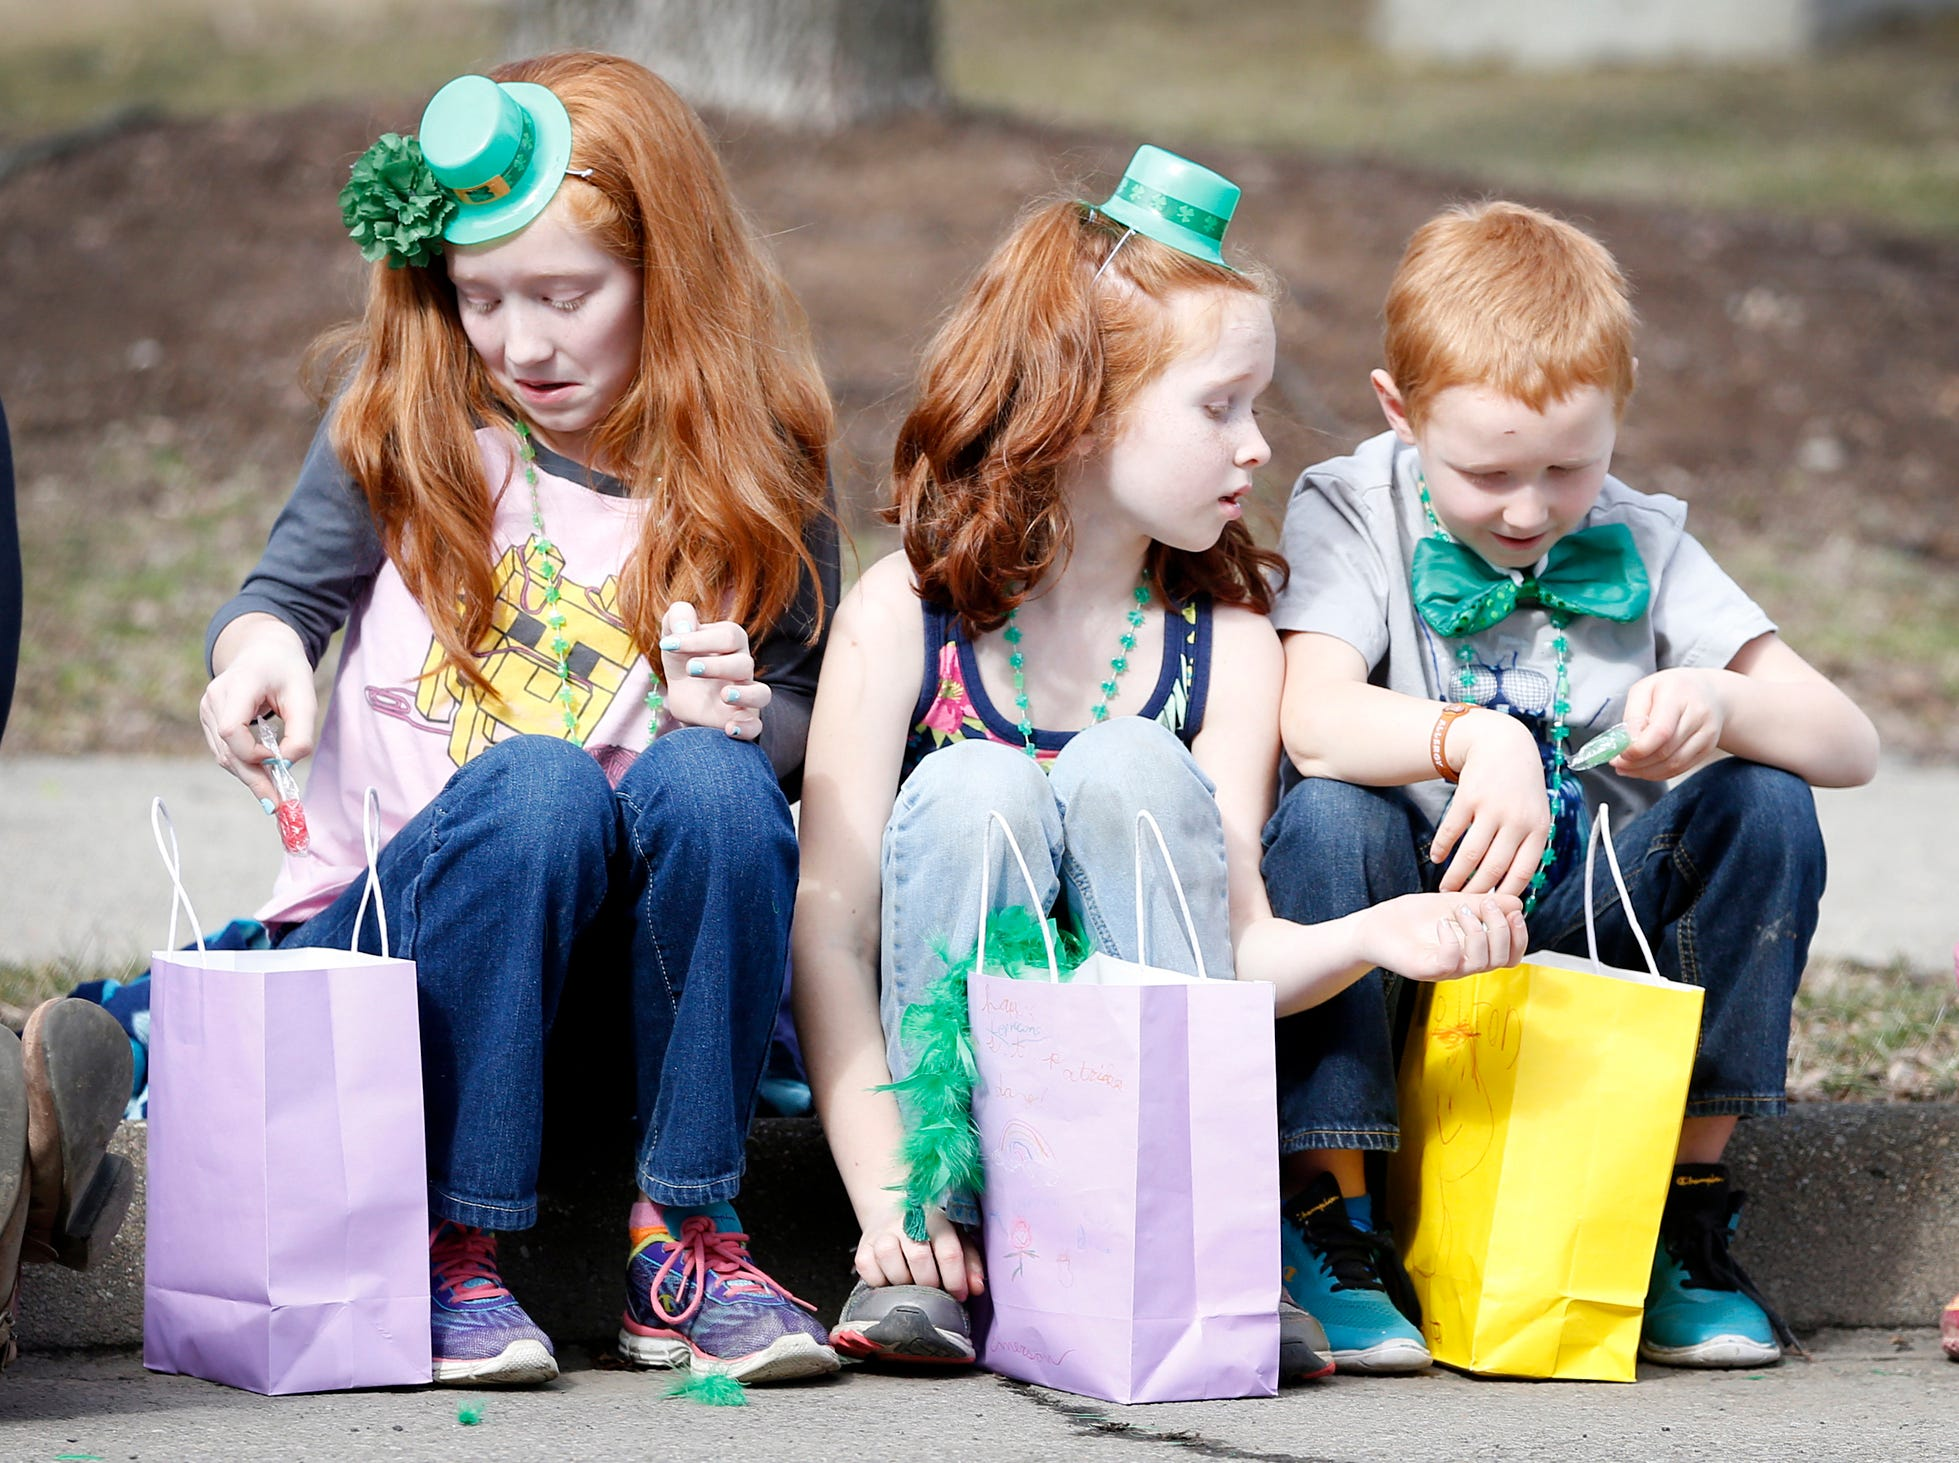 2016: Rhiannon Swimelar, 10, left, and her siblings Emerson, 8, and Colton, 6, all of Lowman, place candy in their bags that they recently grabbed during the St. Patrick's Day Parade Saturday.